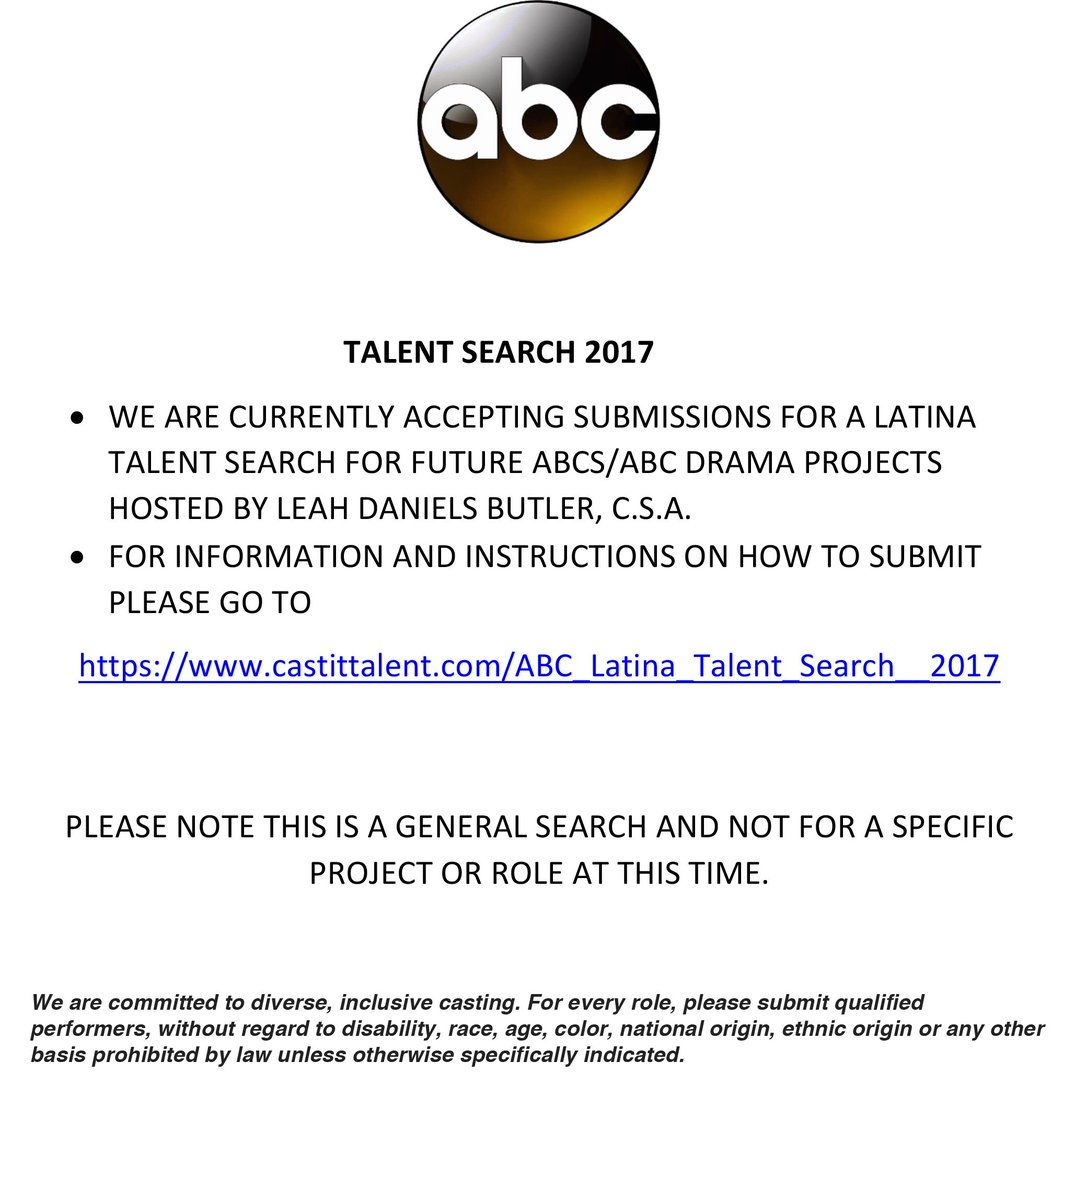 Talent Search For Future ABCS ABC Drama Projects Hosted By Leah Daniels Butler CSA Information And Instructions On How To Submit Please Go